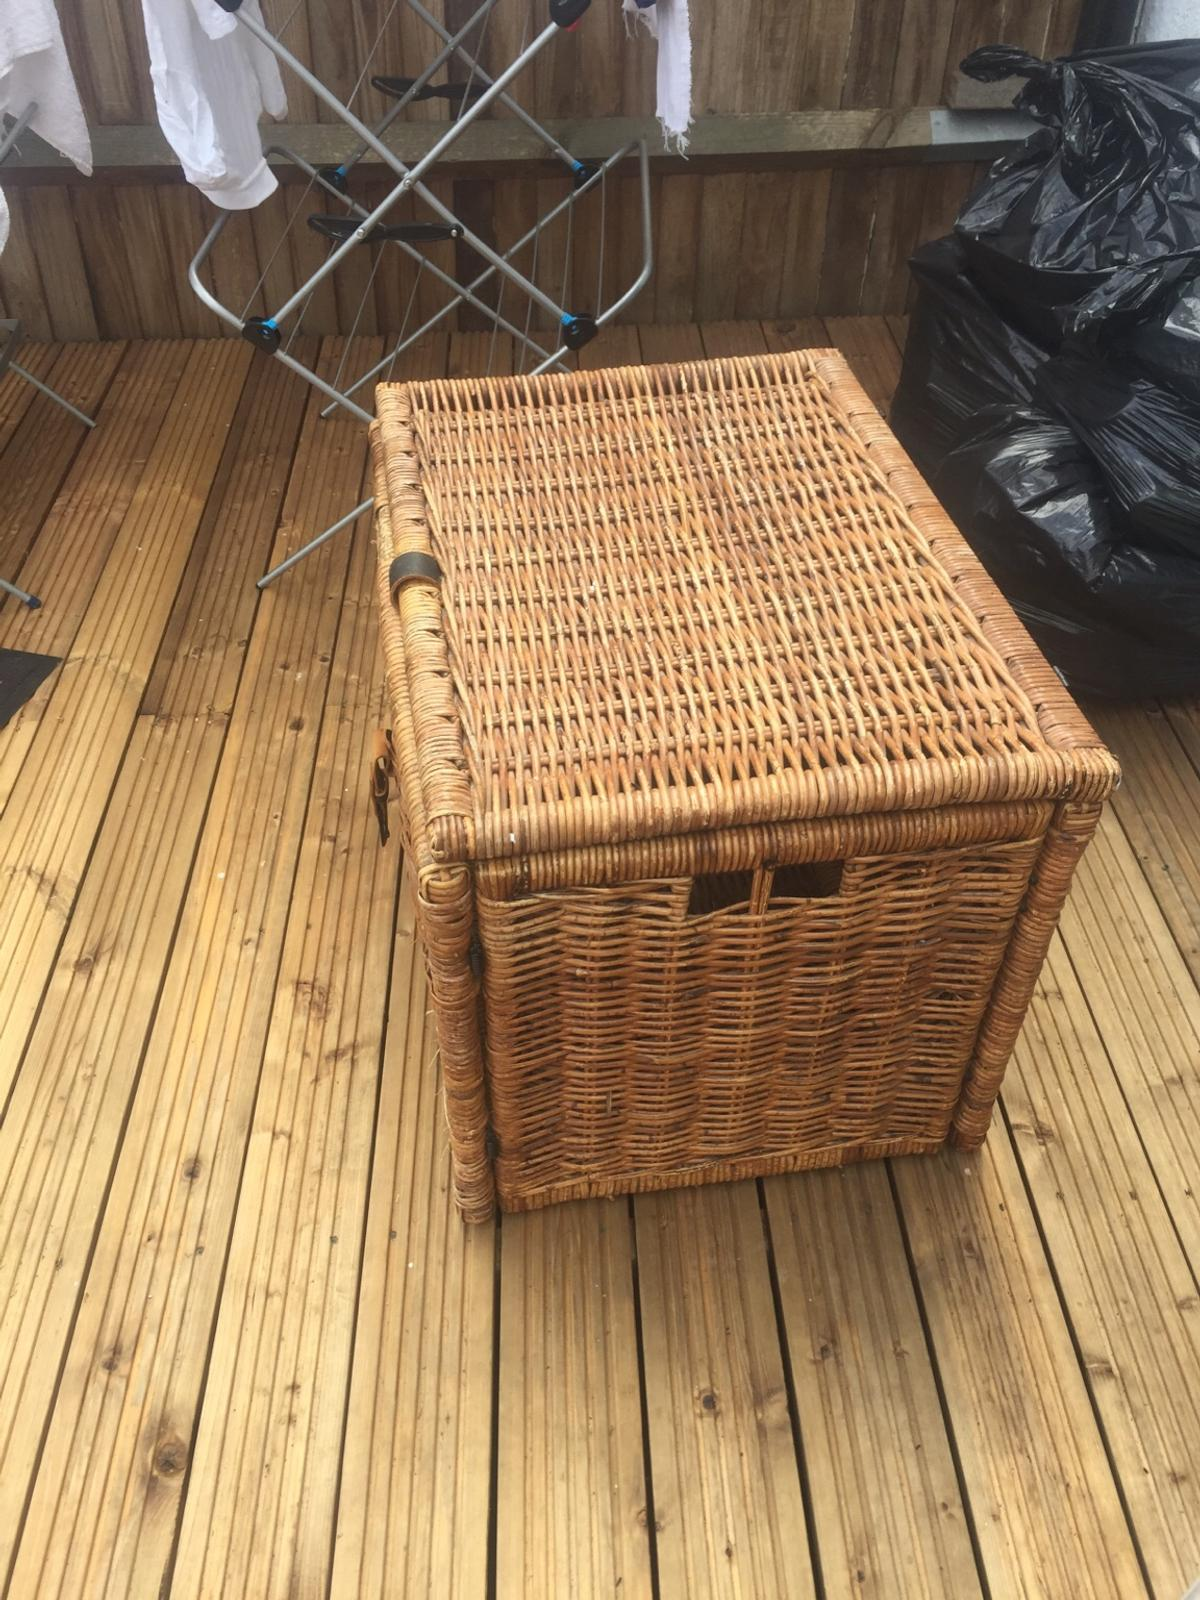 Large Ikea Wicker Storage Box In Sw20 London Borough Of Merton For 15 00 For Sale Shpock